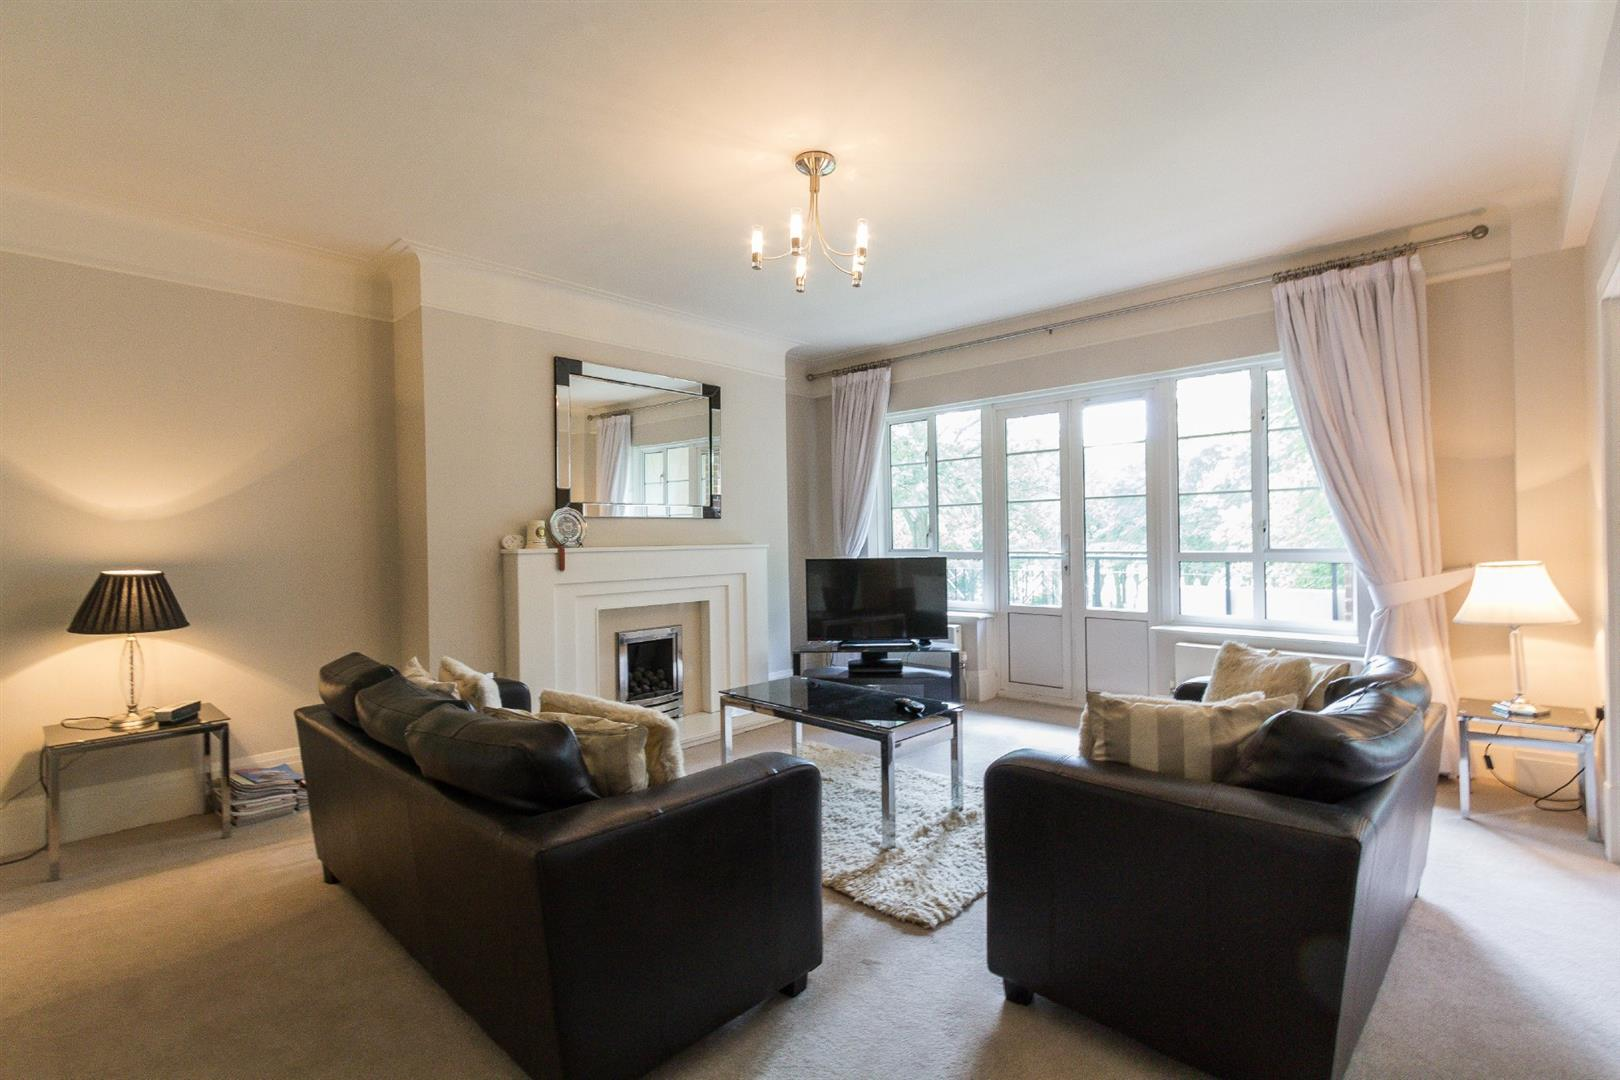 3 bed apartment to rent in Gosforth, NE3 4YD  - Property Image 1